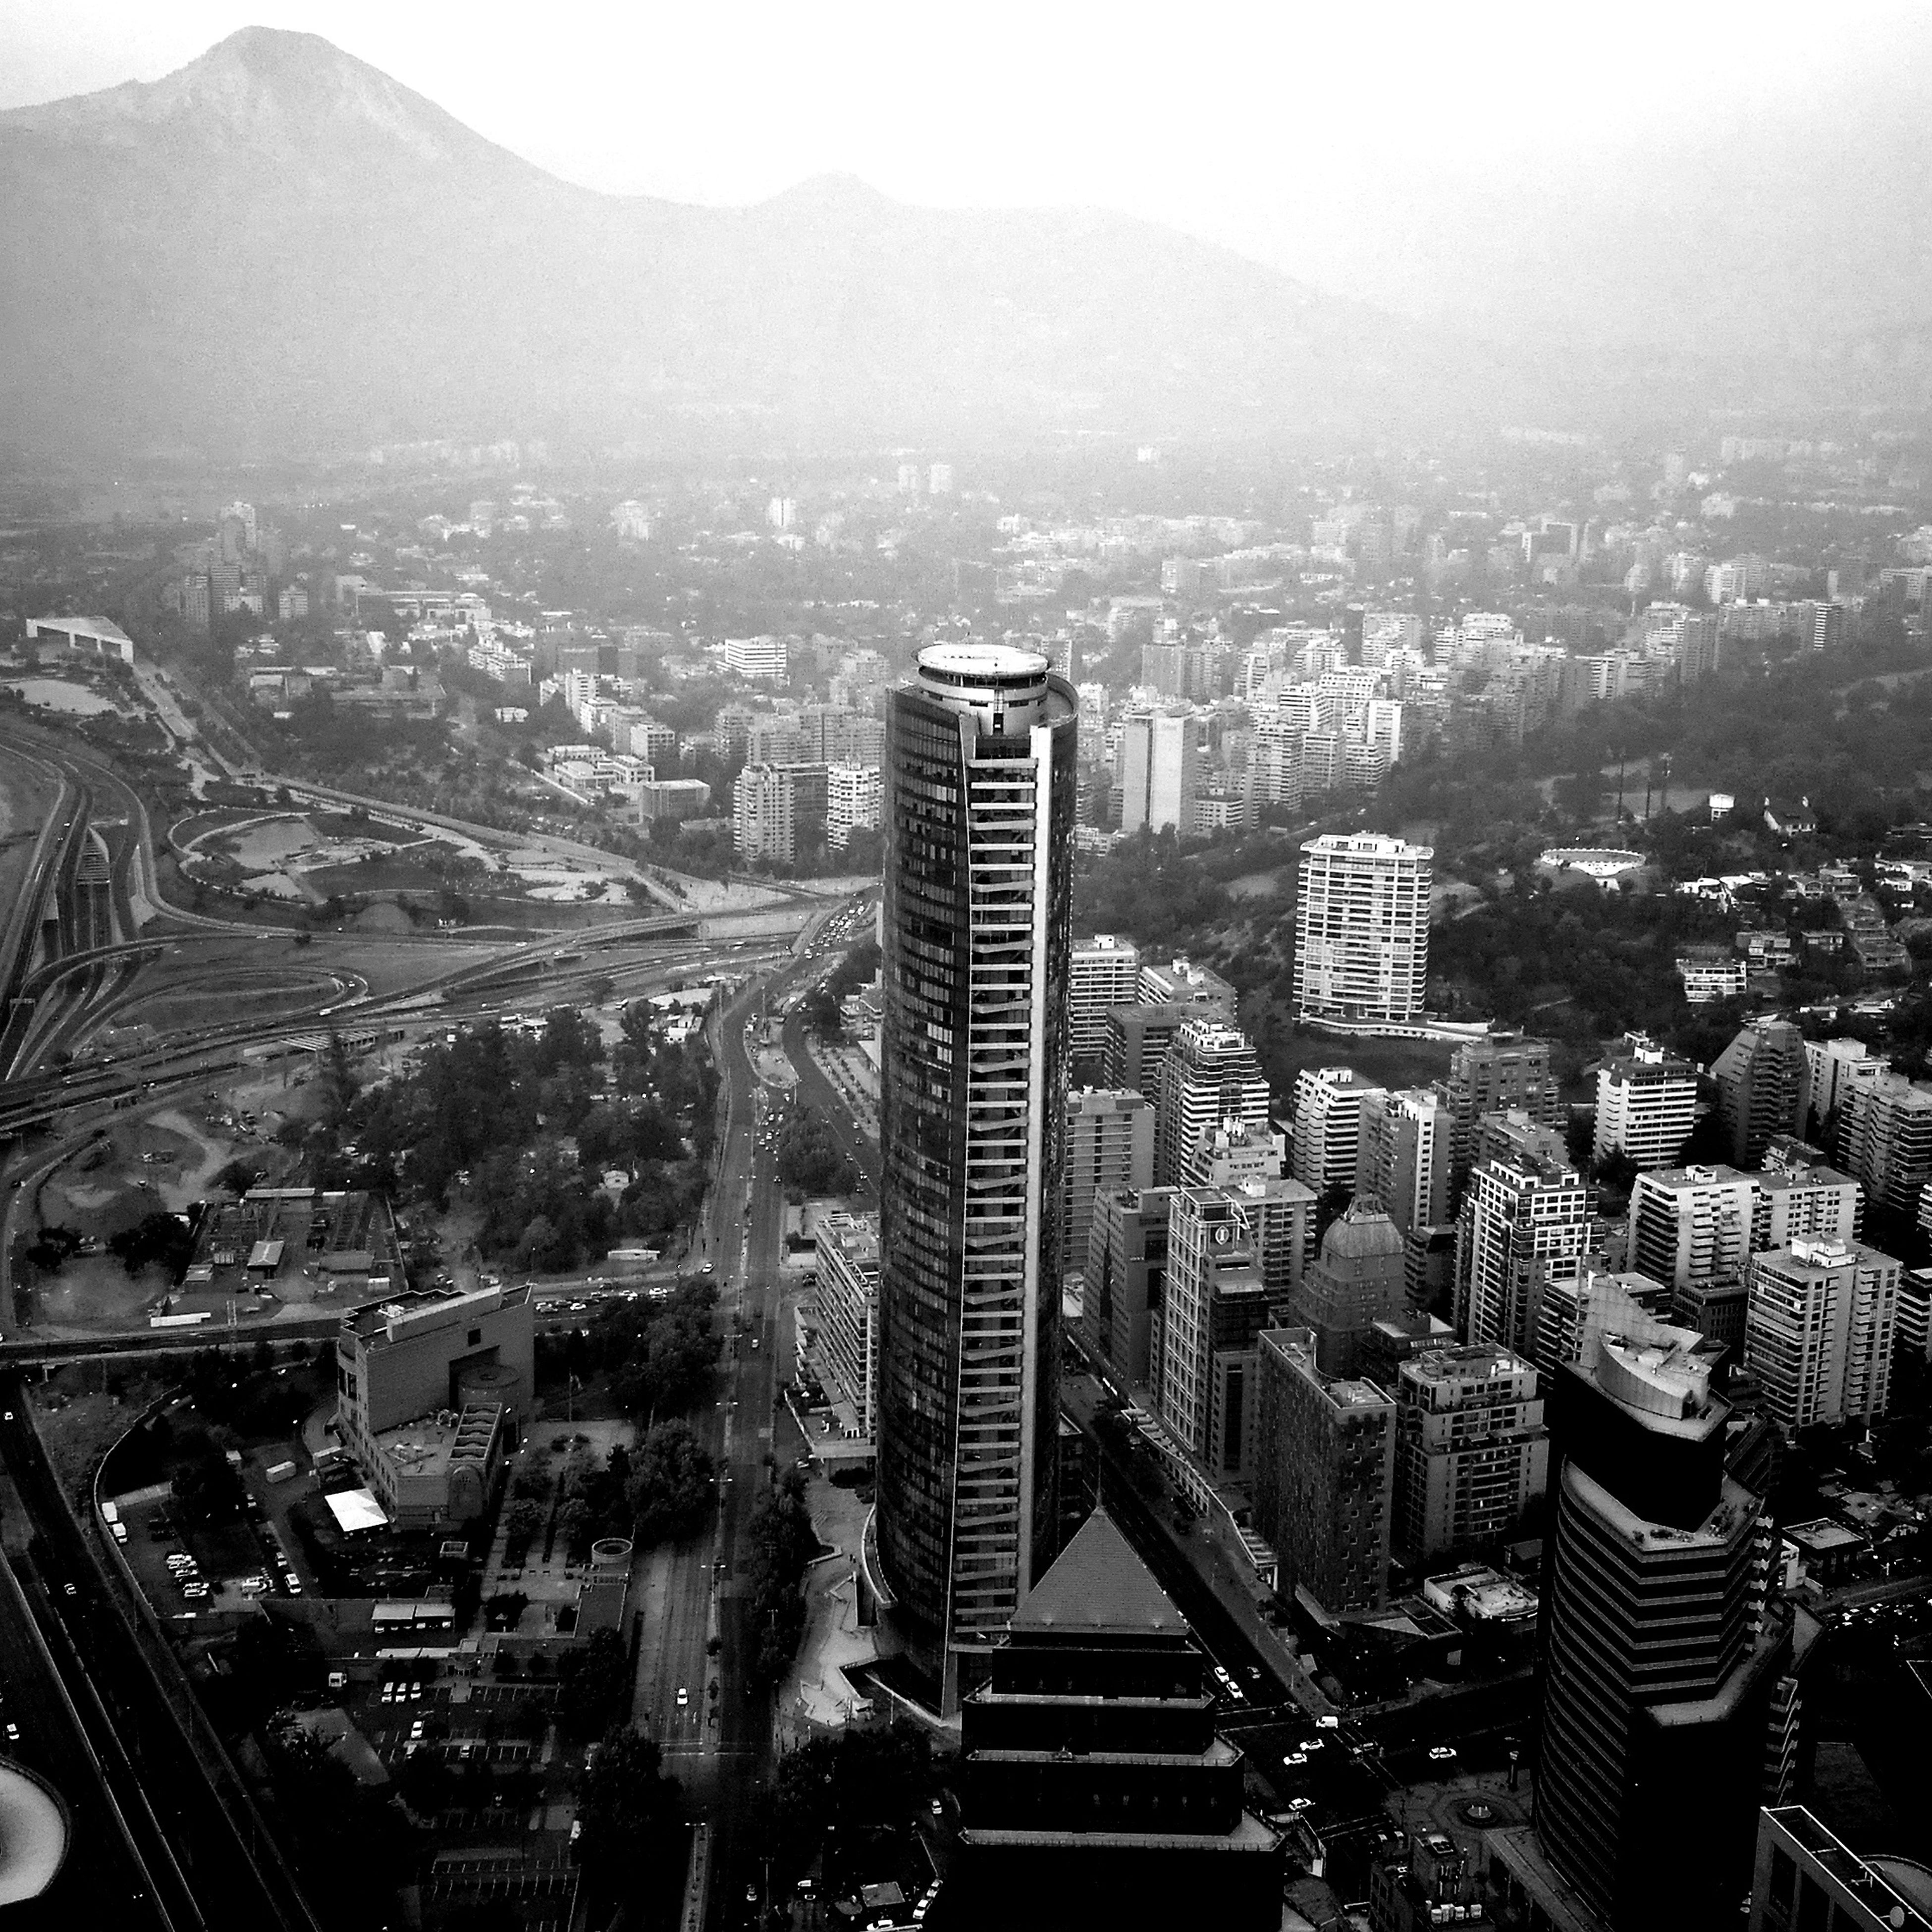 architecture, city, building exterior, cityscape, travel destinations, built structure, aerial view, crowded, outdoors, skyscraper, modern, sky, day, people